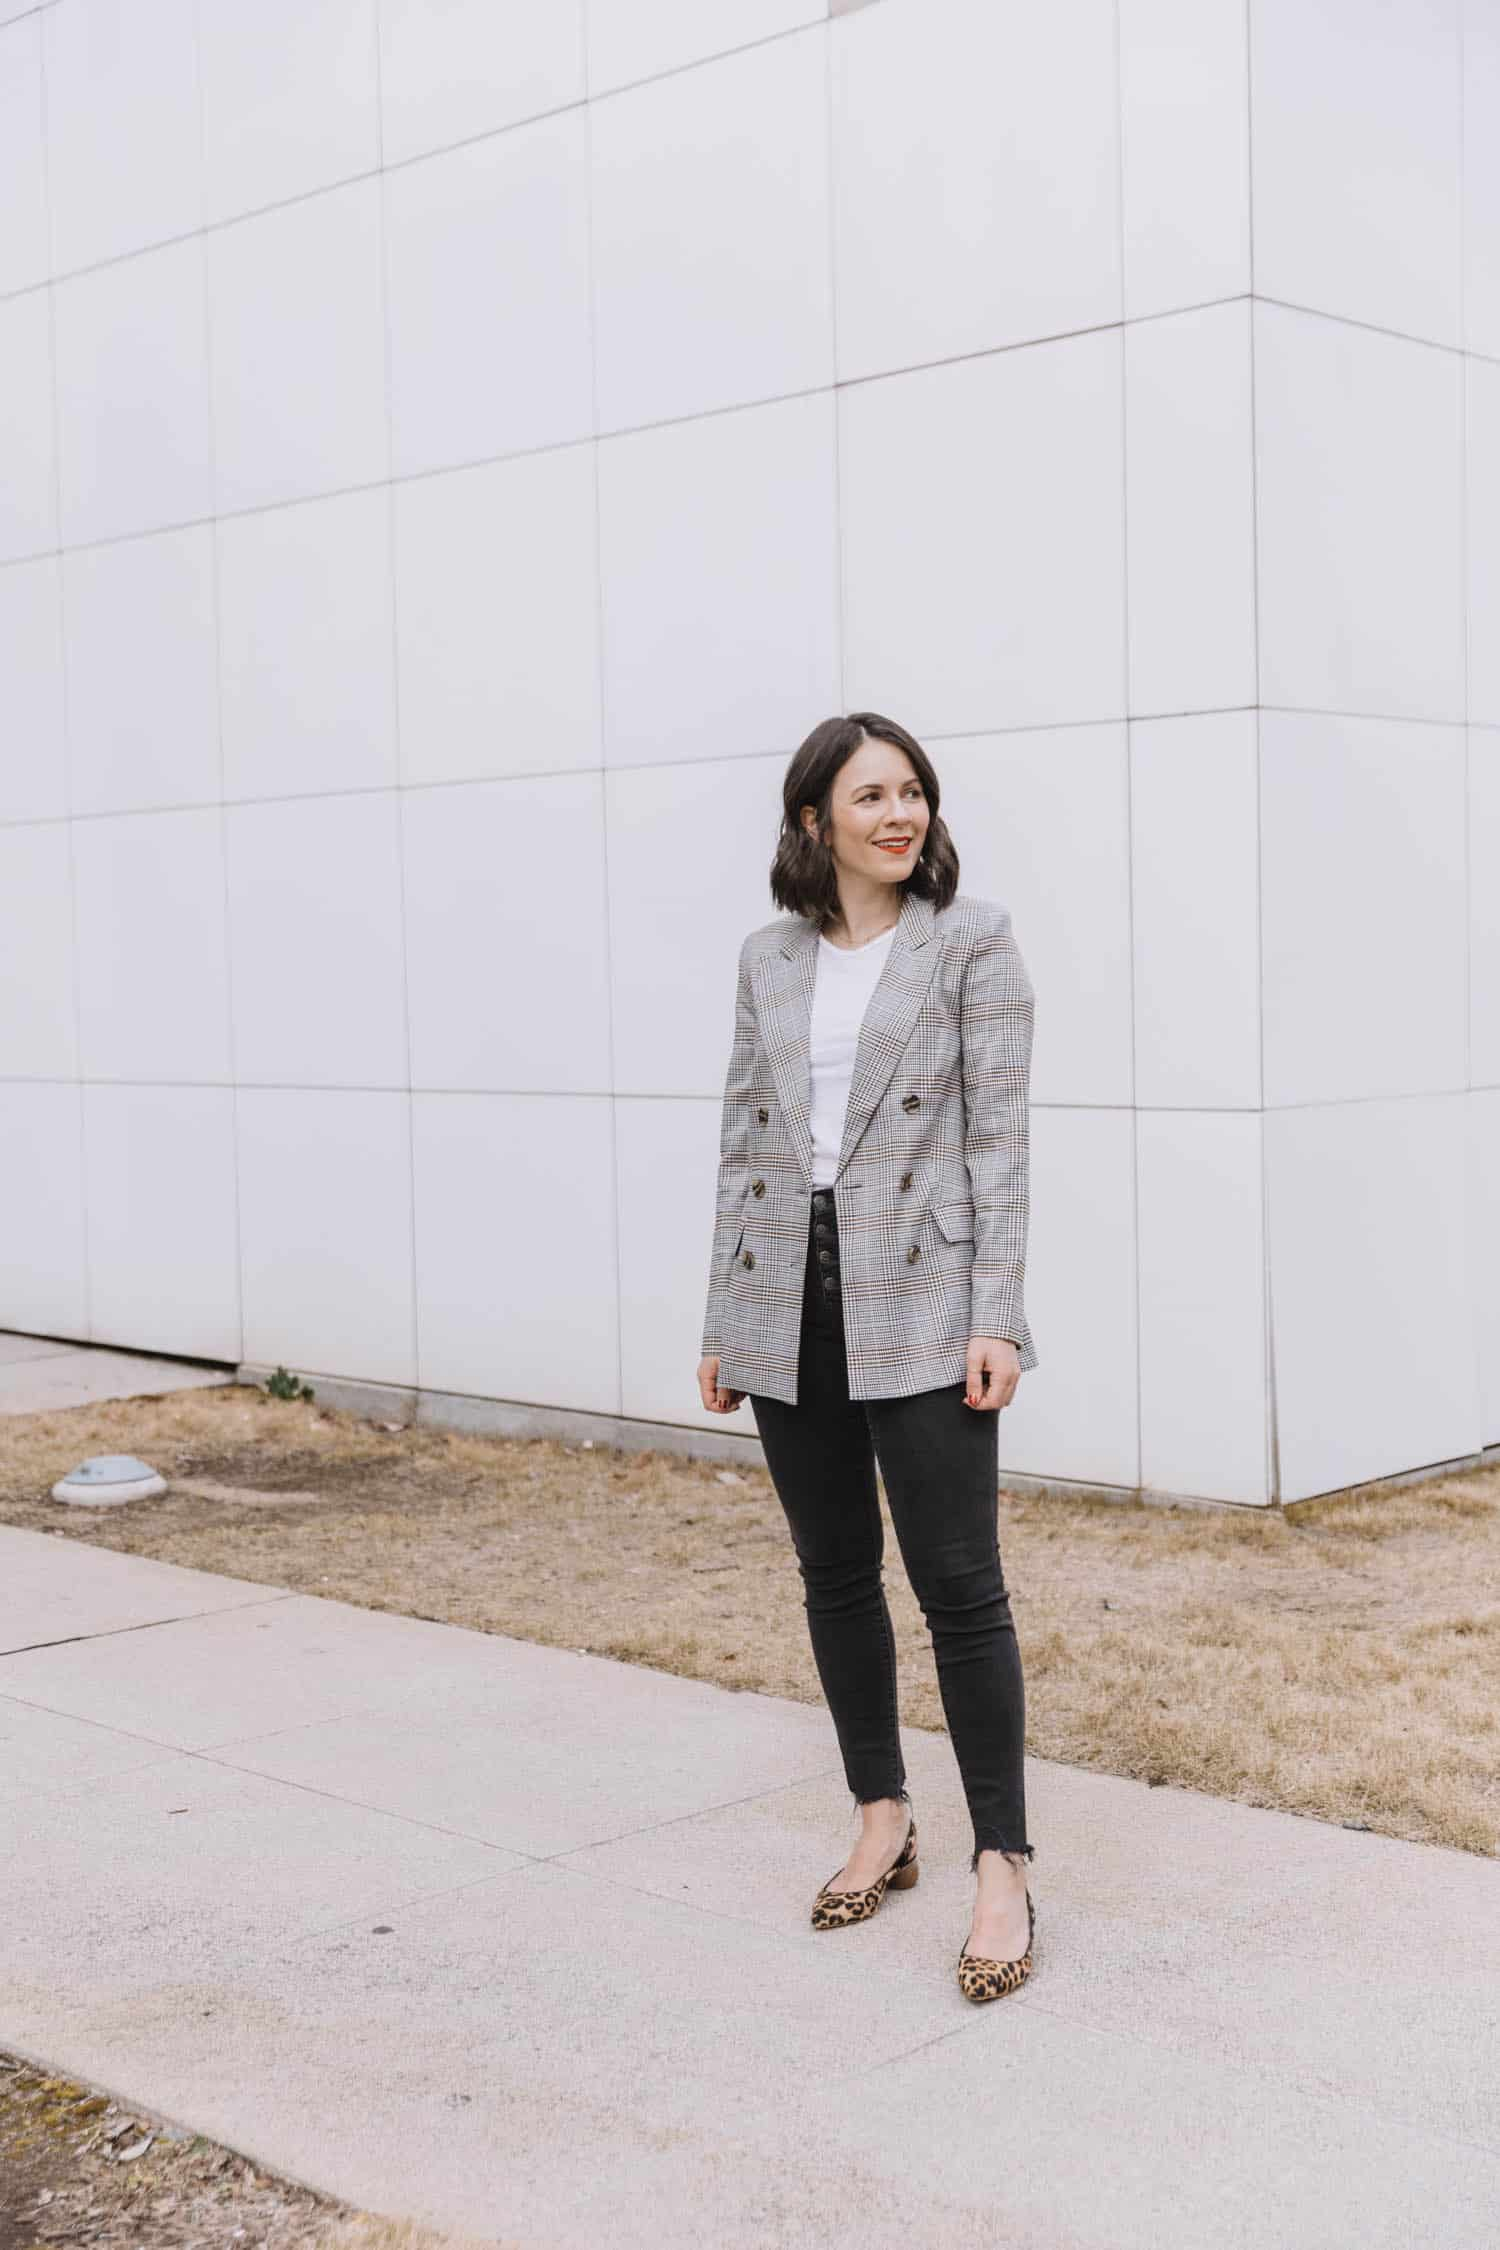 Business casual outfit with blazer